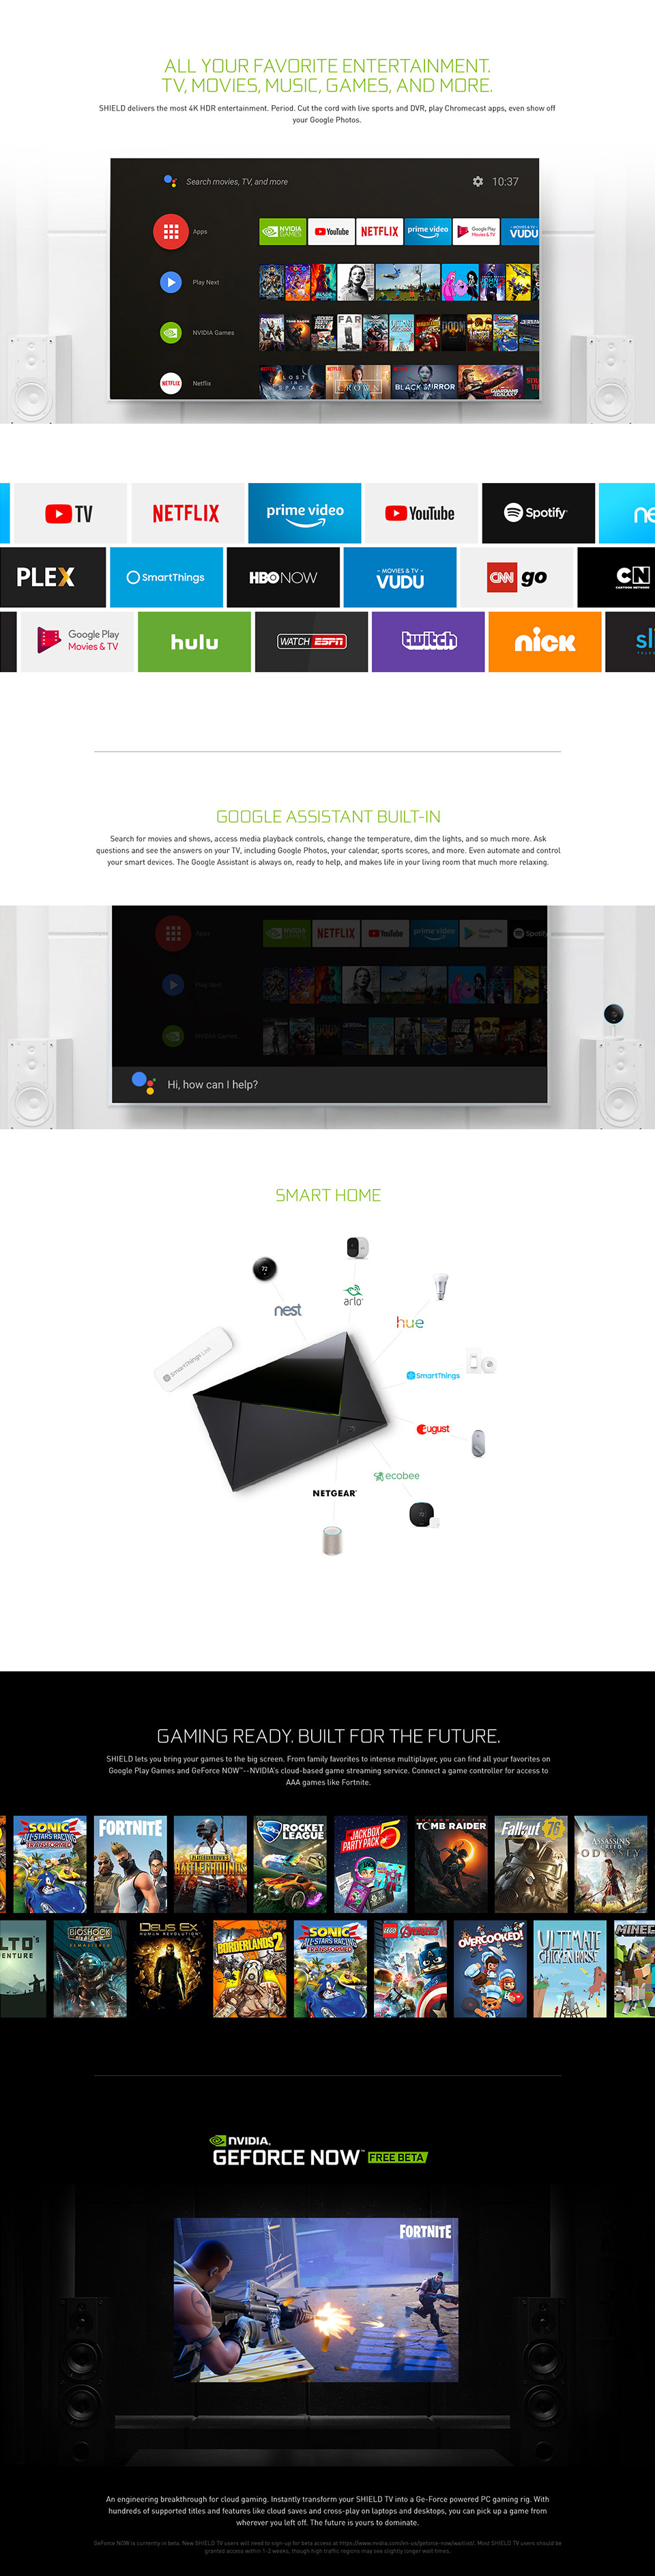 Nvidia Shield TV Pro features